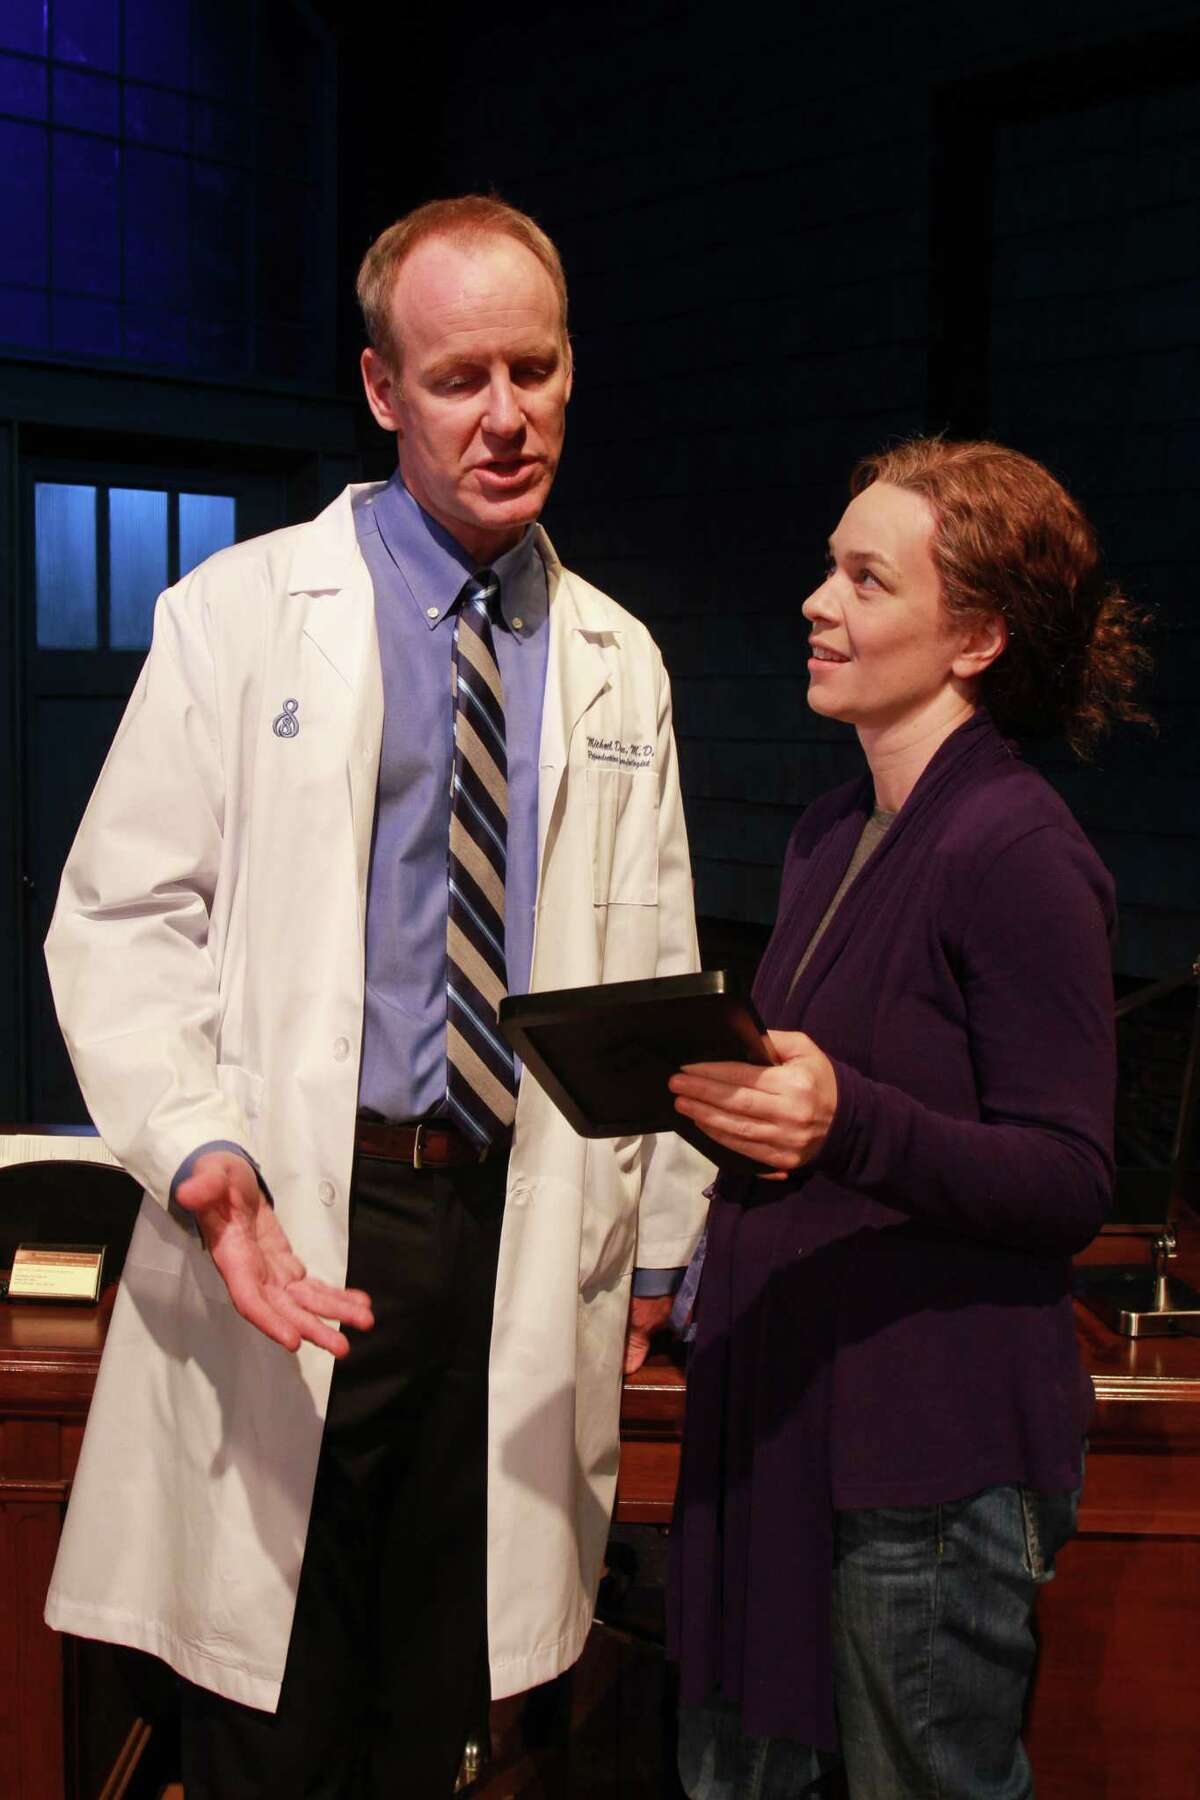 """(For the Chronicle/Gary Fountain, May 27, 2014) Chris Hutchison as Mike, and Elizabeth Bunch as Margaret, in this scene from Alley Theatre's Houston premiere of David Lindsay Abaire's award-winning play, """"Good People."""""""